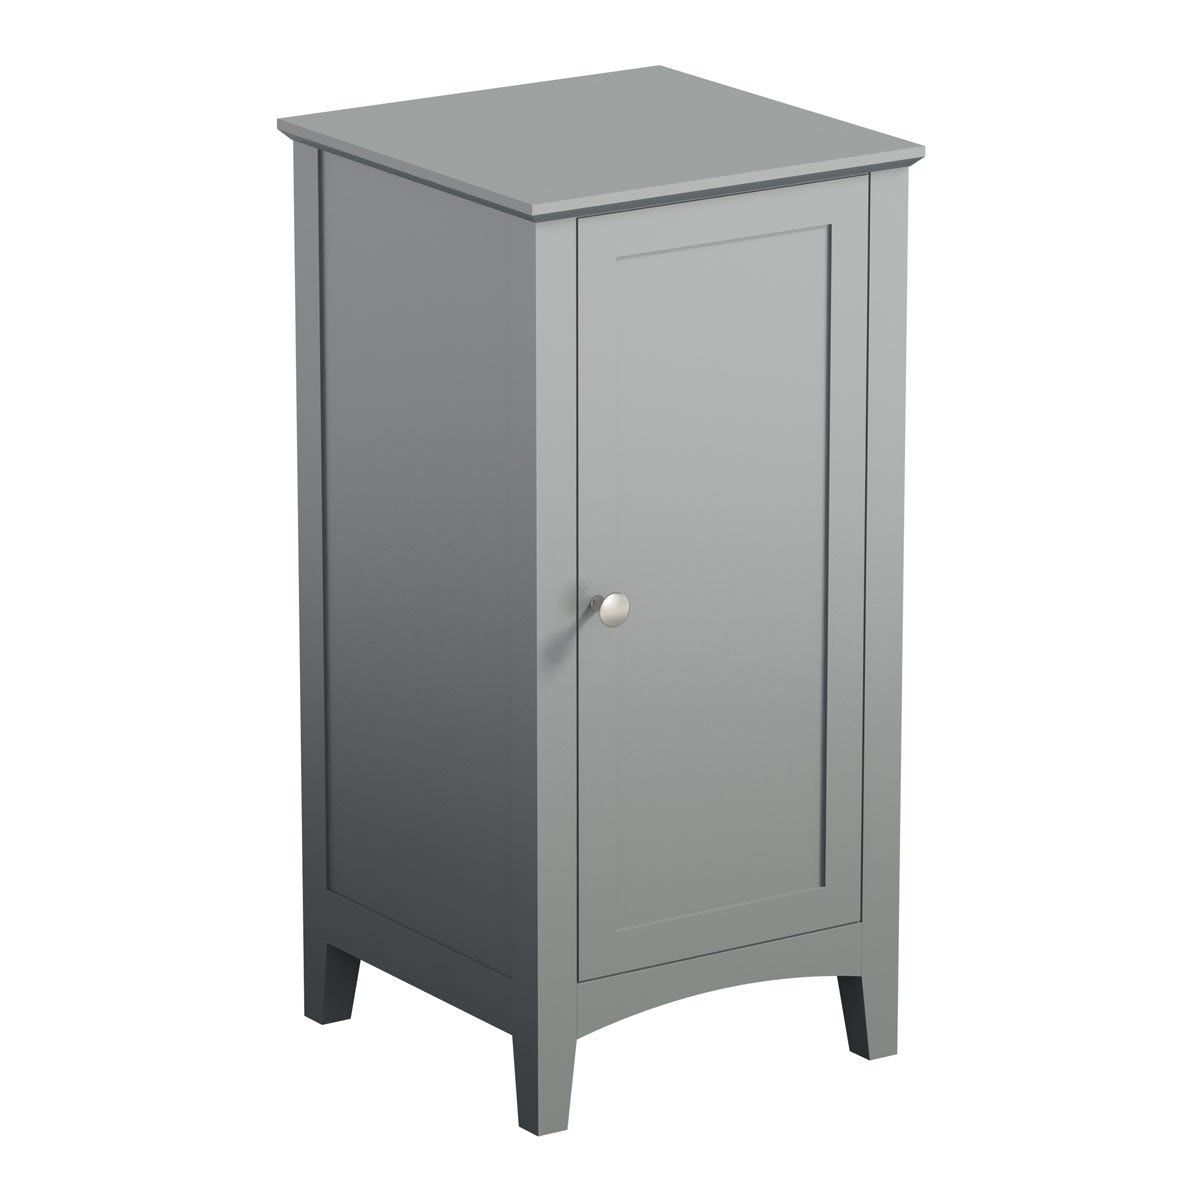 The Bath Co Camberley Satin Grey Storage Unit Grey Storage Bathroom Storage Units Storage